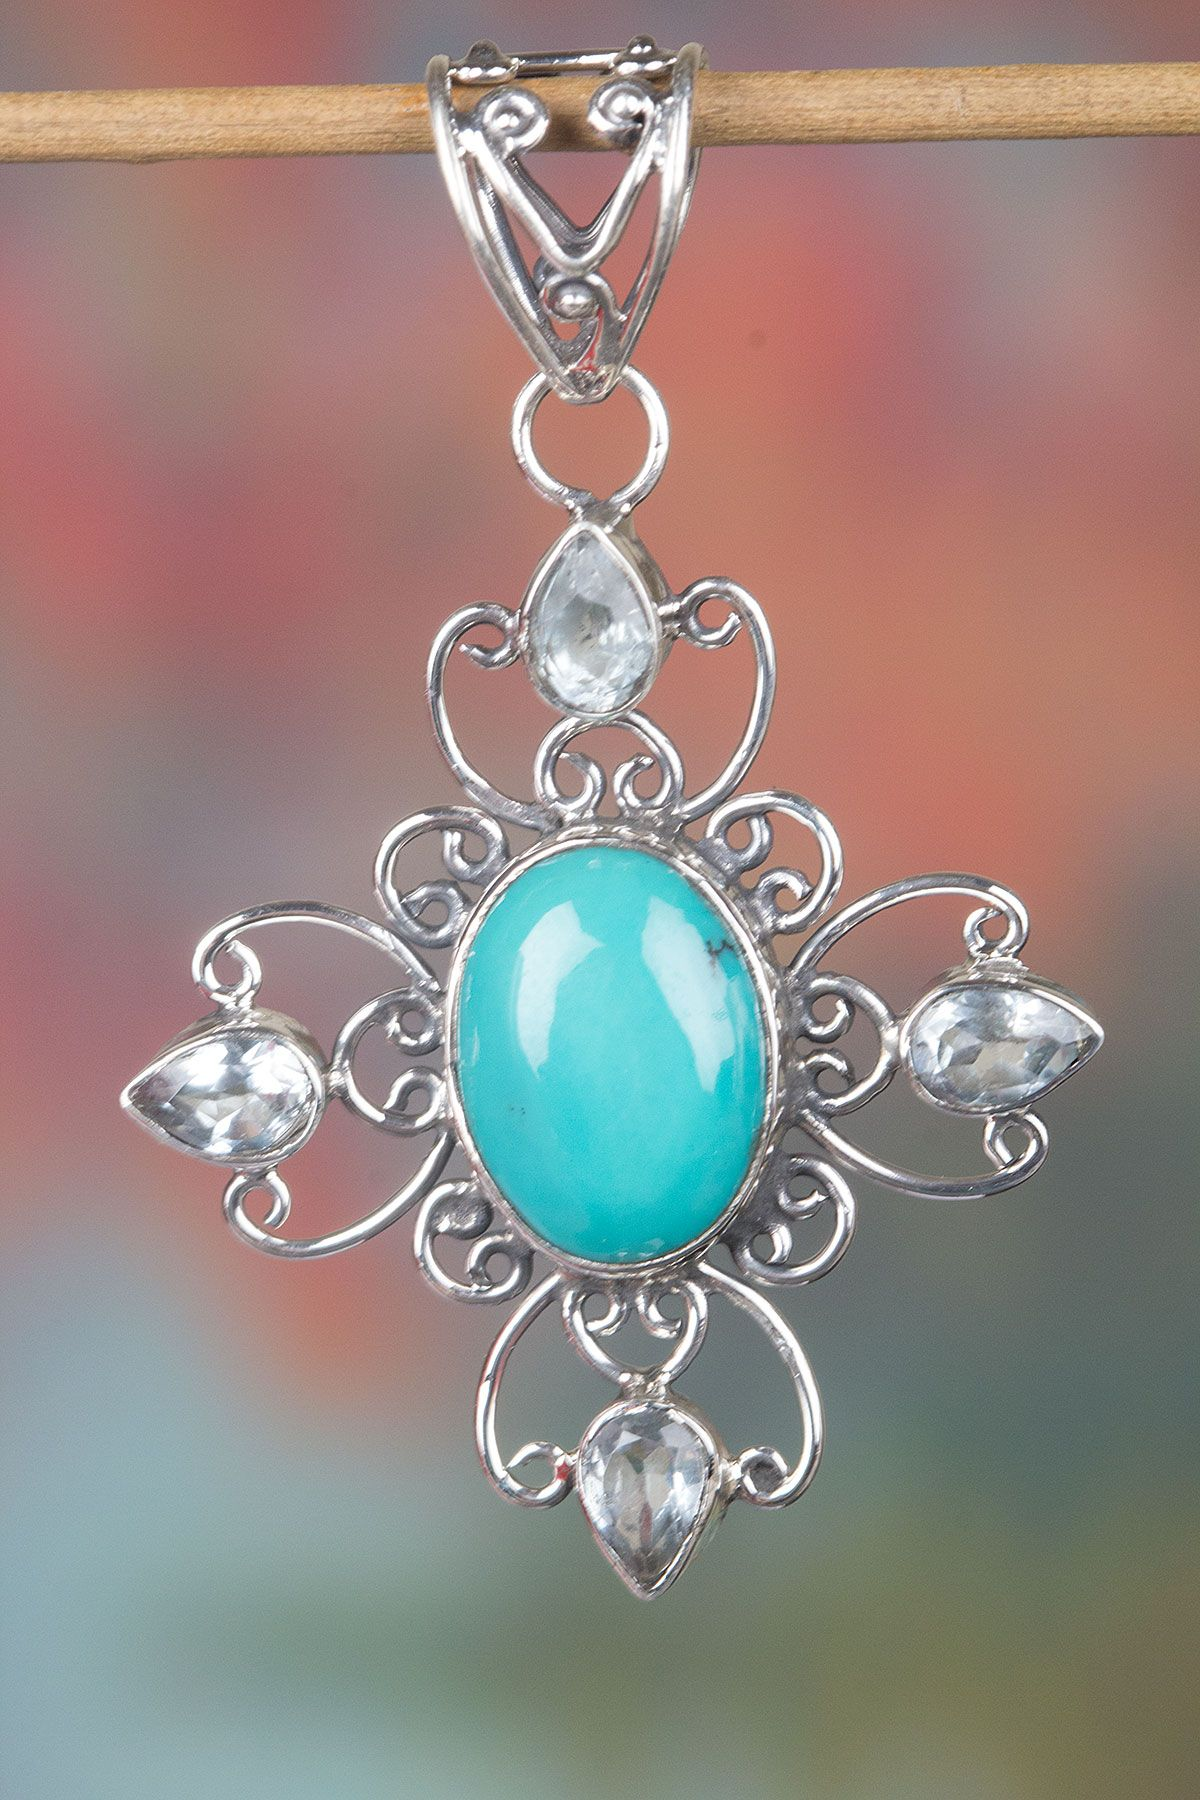 Turquoise Pendant, Sterling Silver Pendant, Cabochon